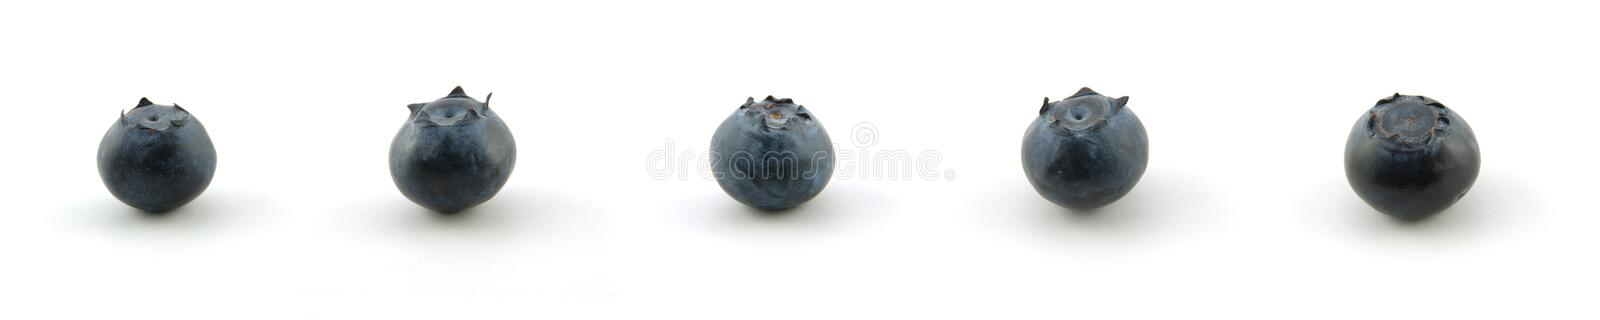 Blueberry collection stock photo